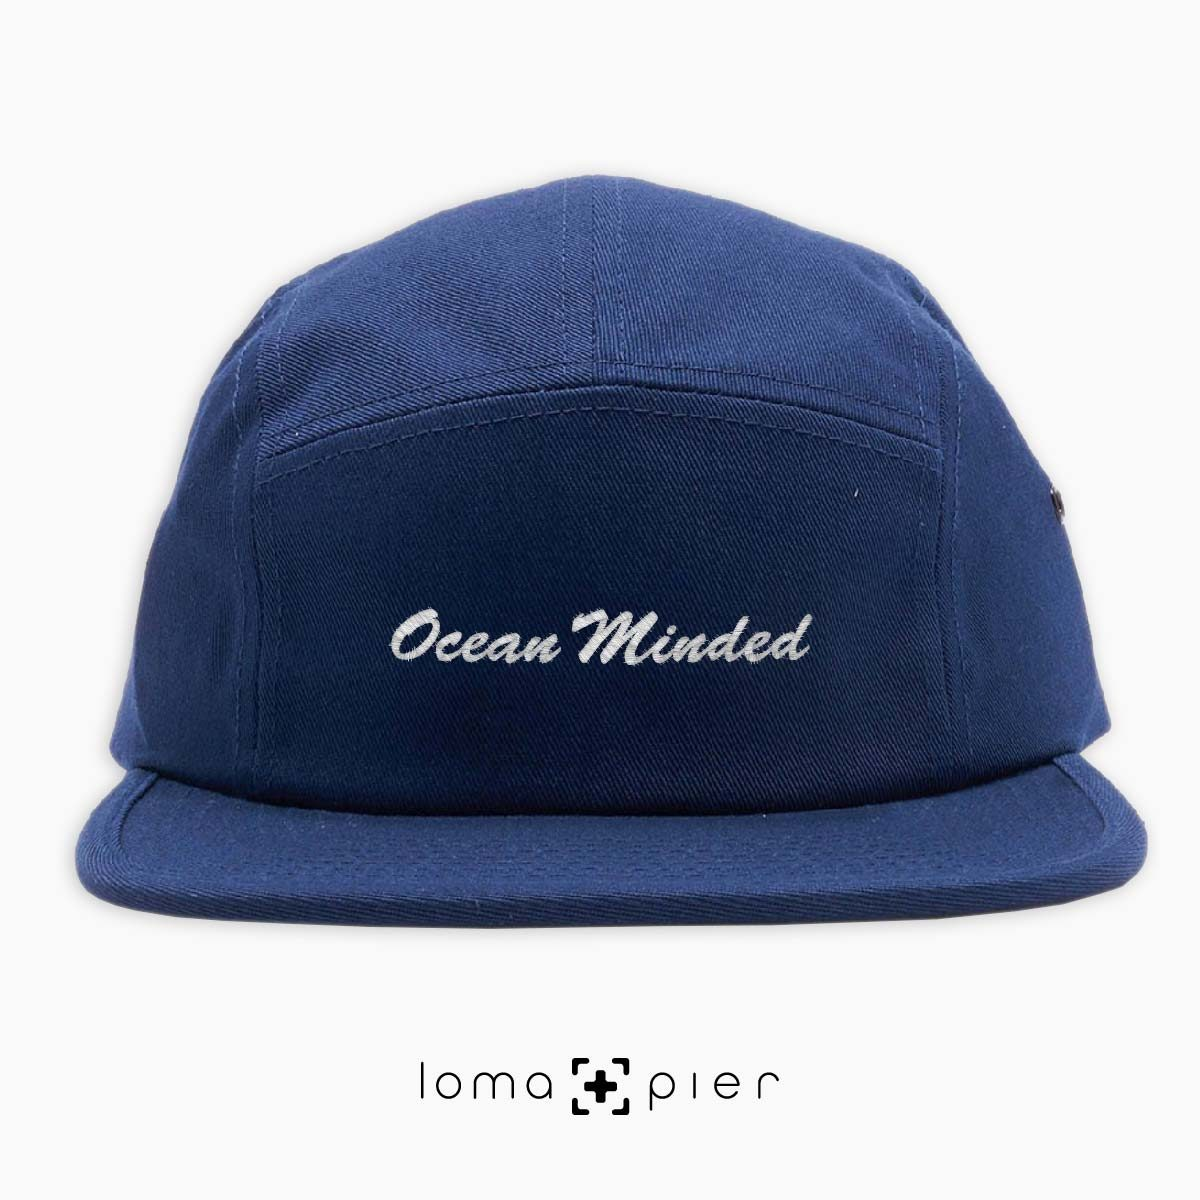 OCEAN MINDED embroidered on a navy blue cotton 5-panel hat by loma+pier hat store